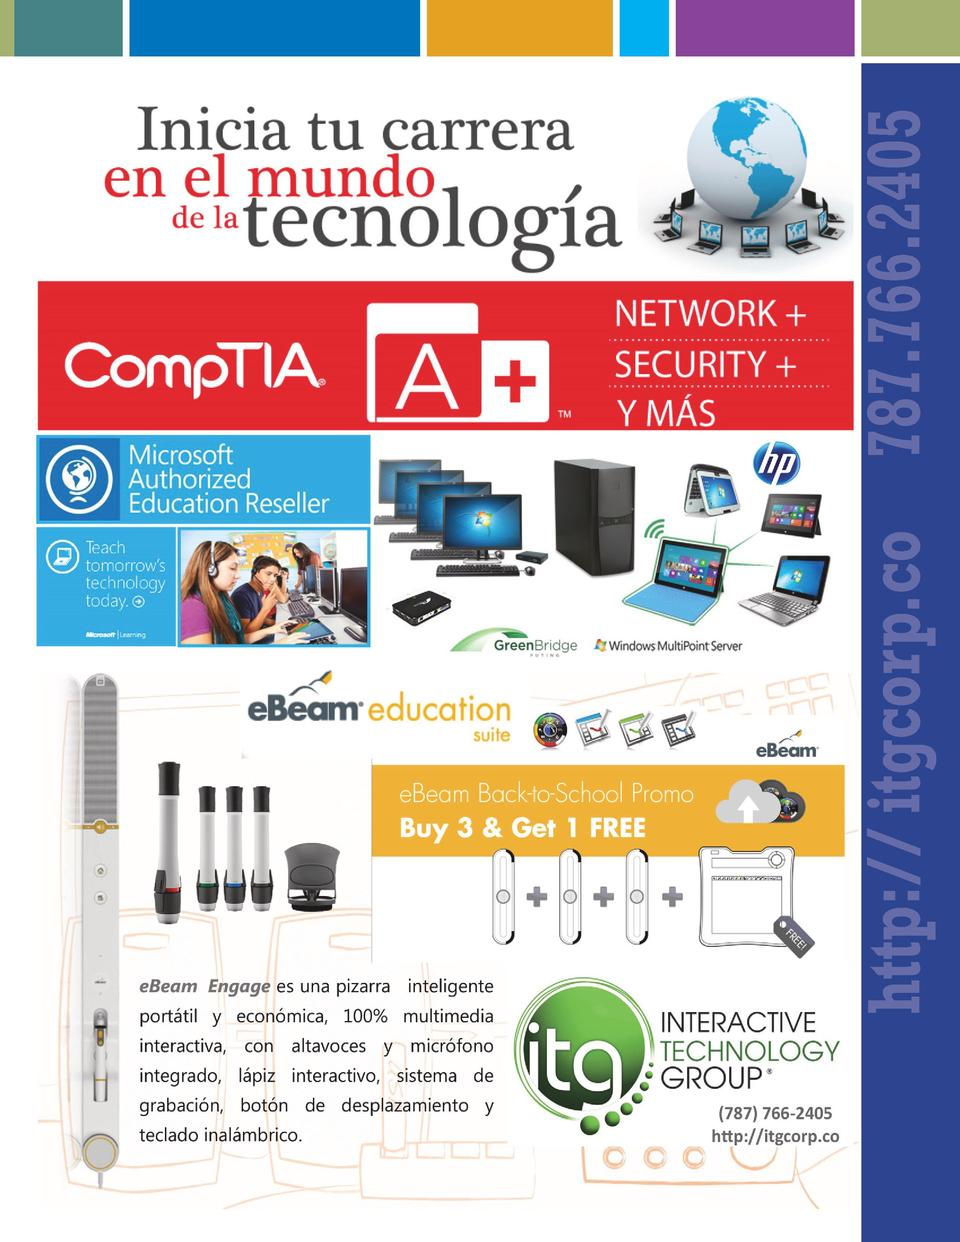 27  http    itgcorp.co 787.766.2405